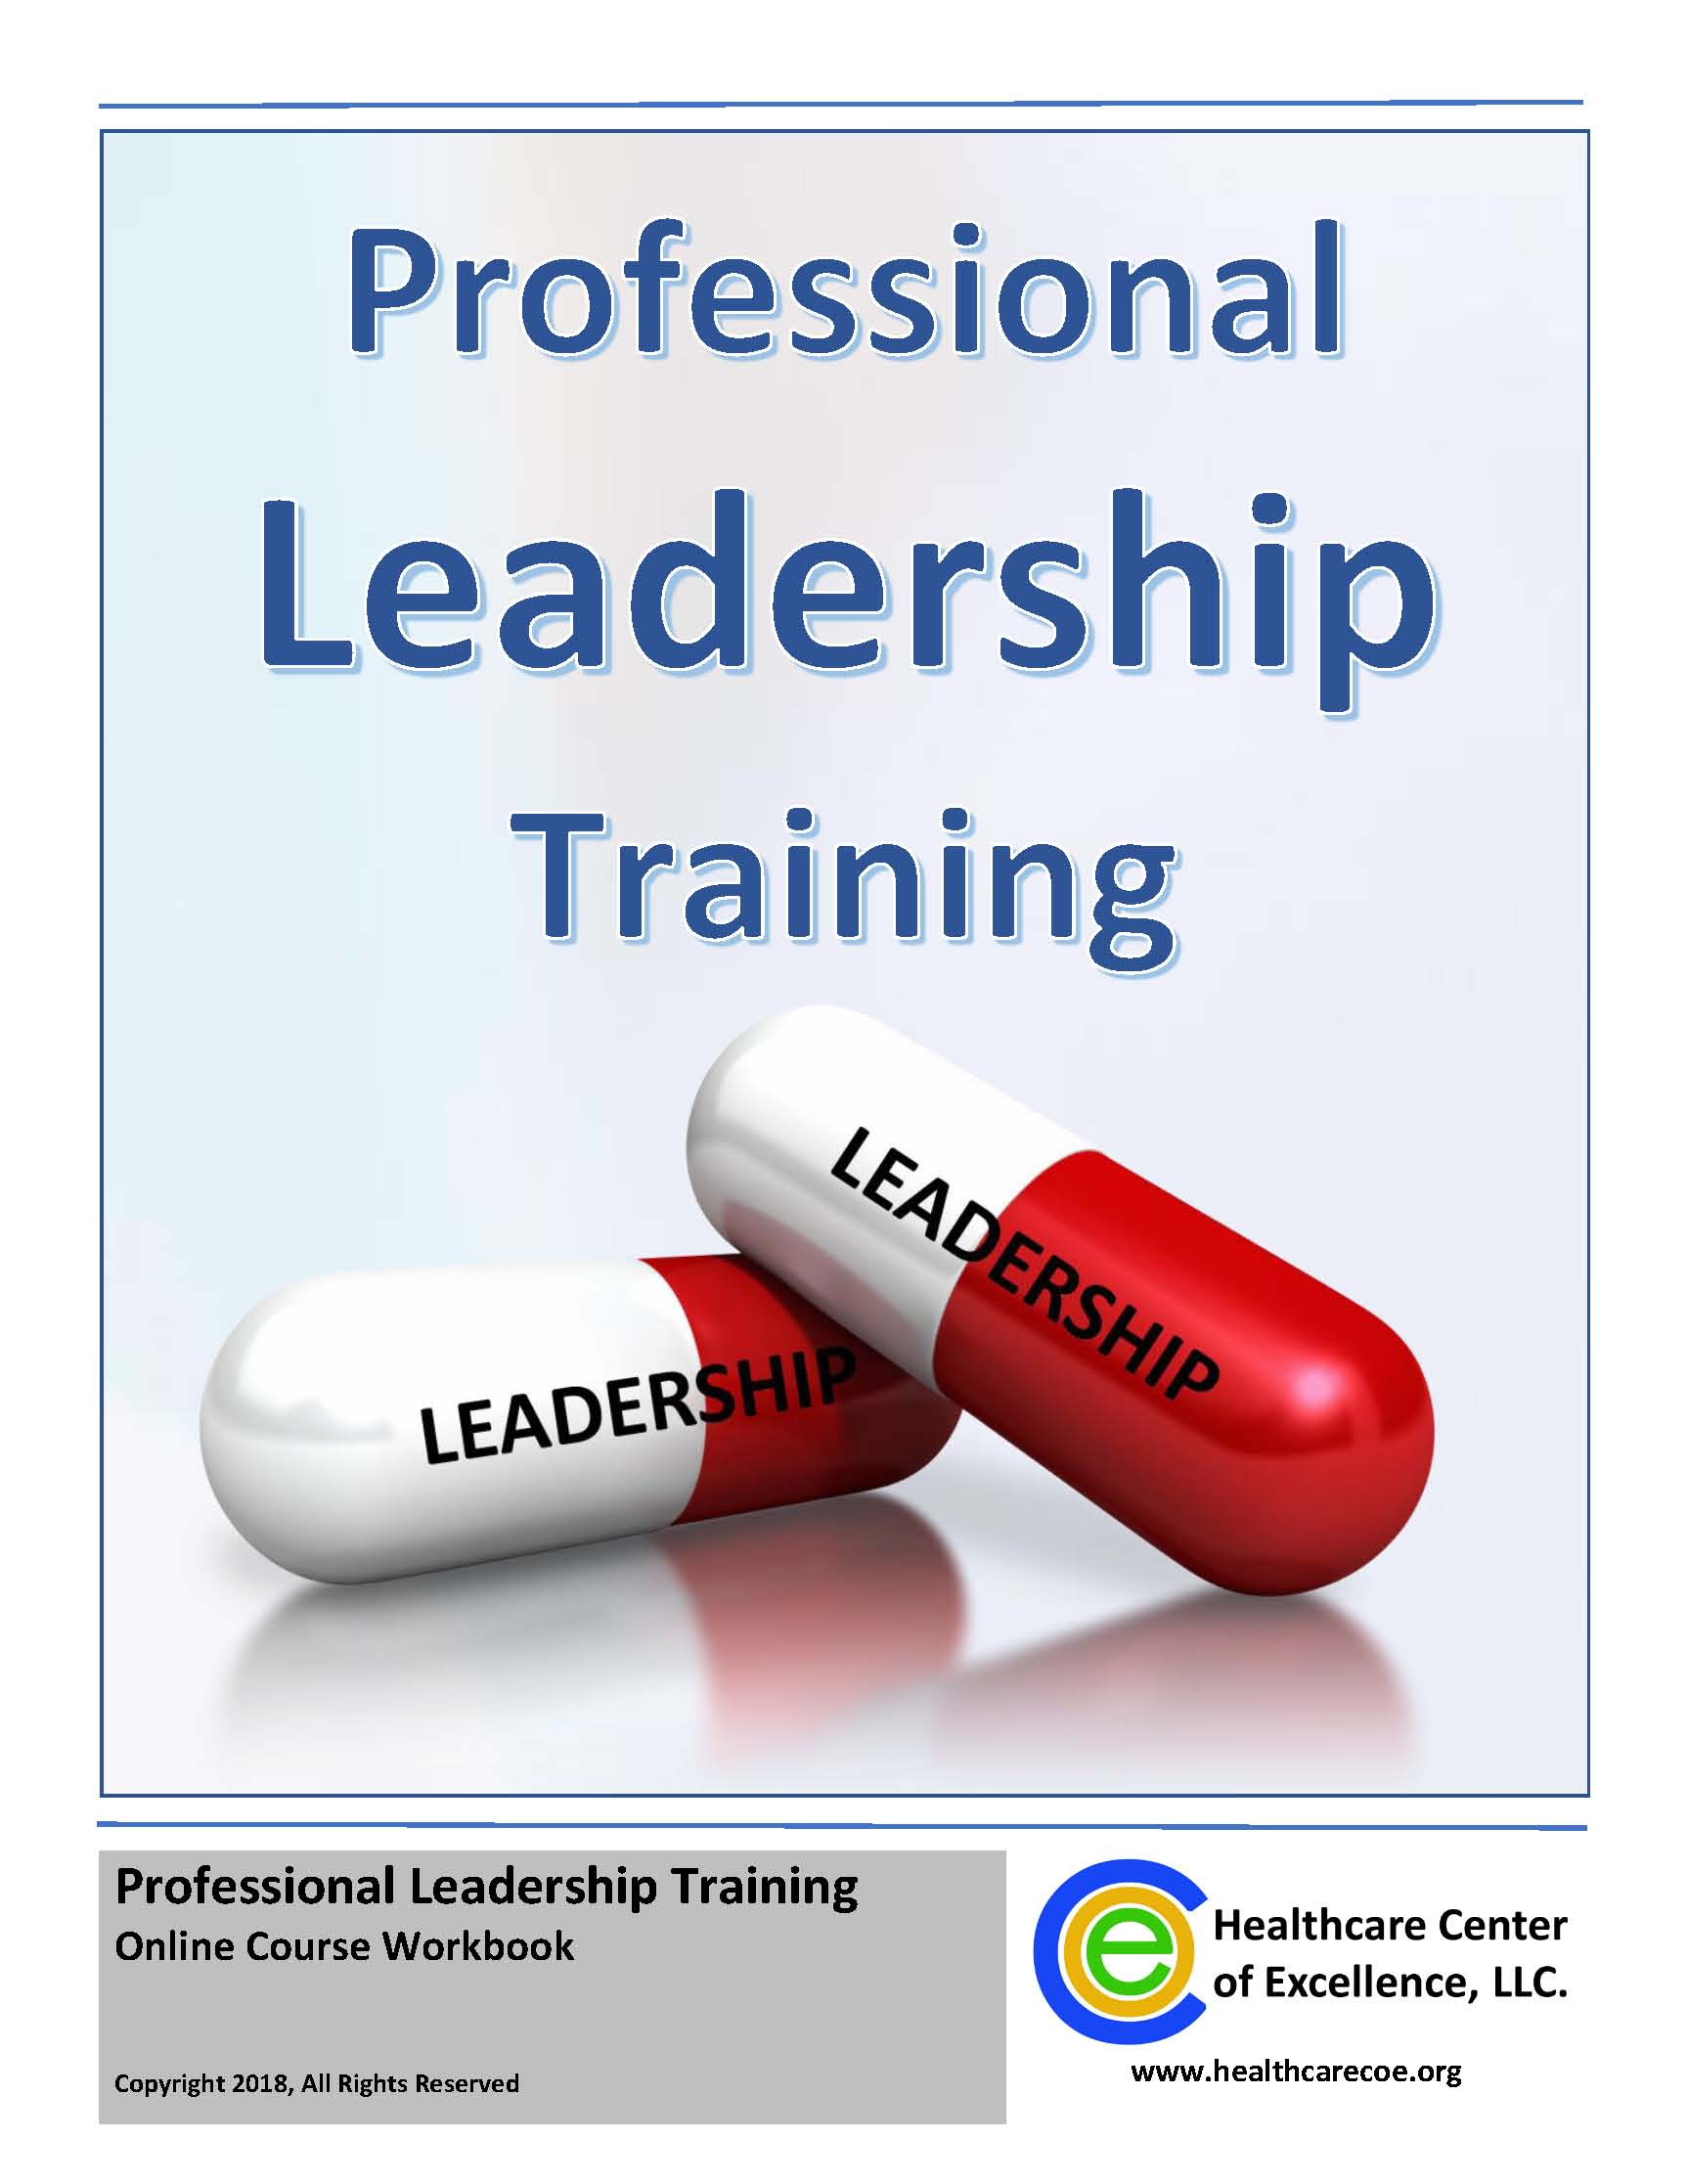 Professional Leadership Course - Online Self-Study